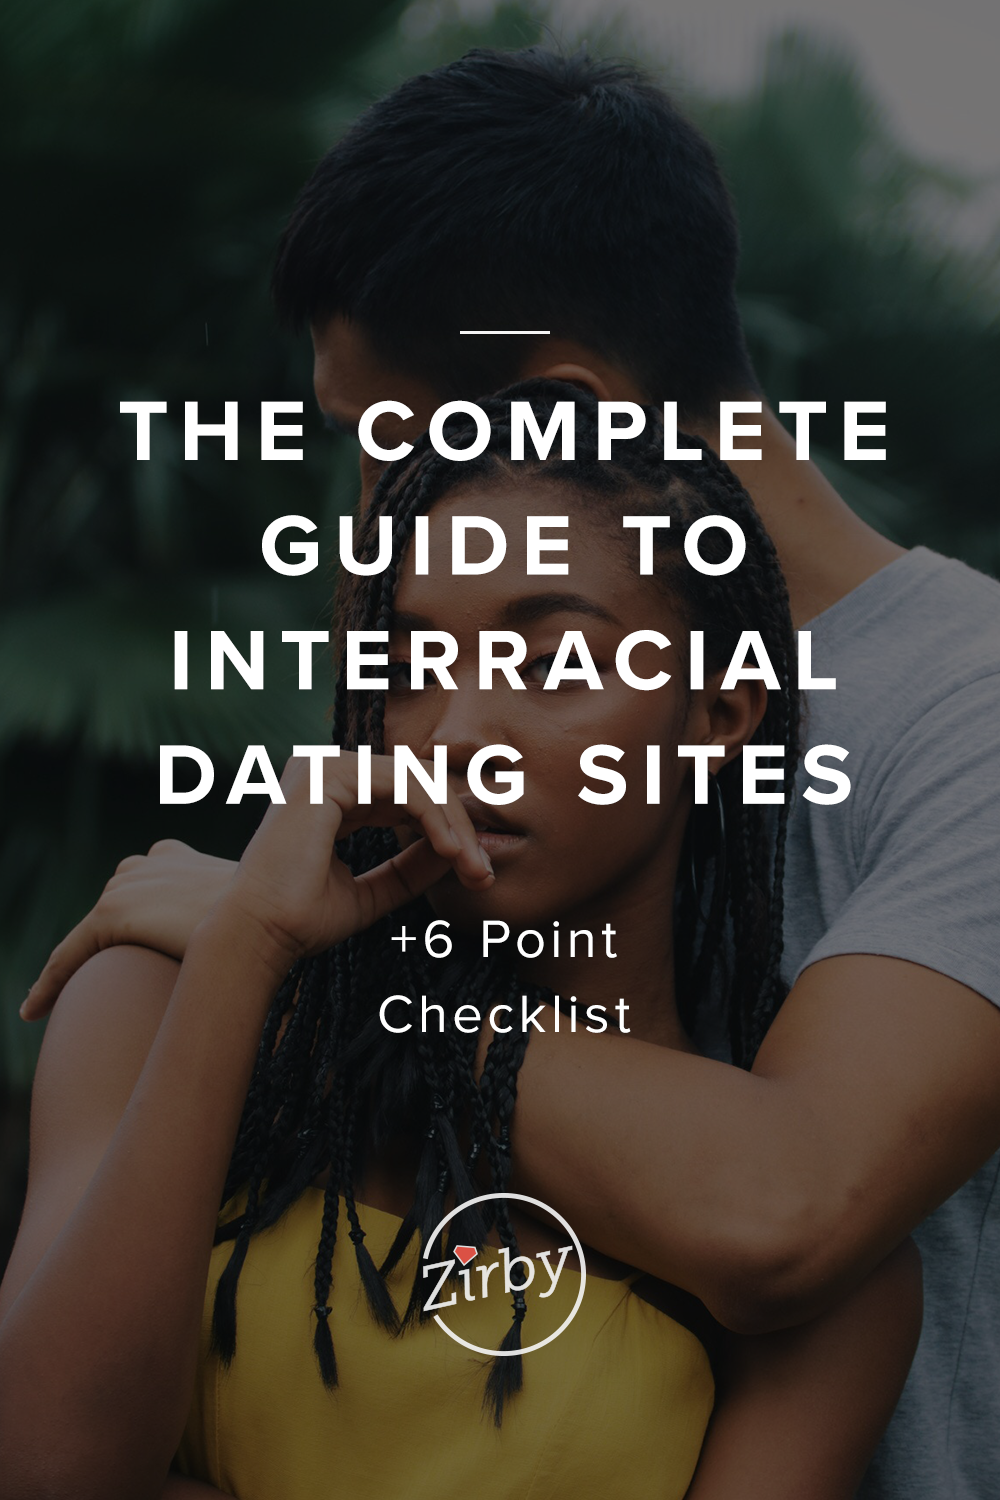 The Complete Guide to Interracial Dating Sites